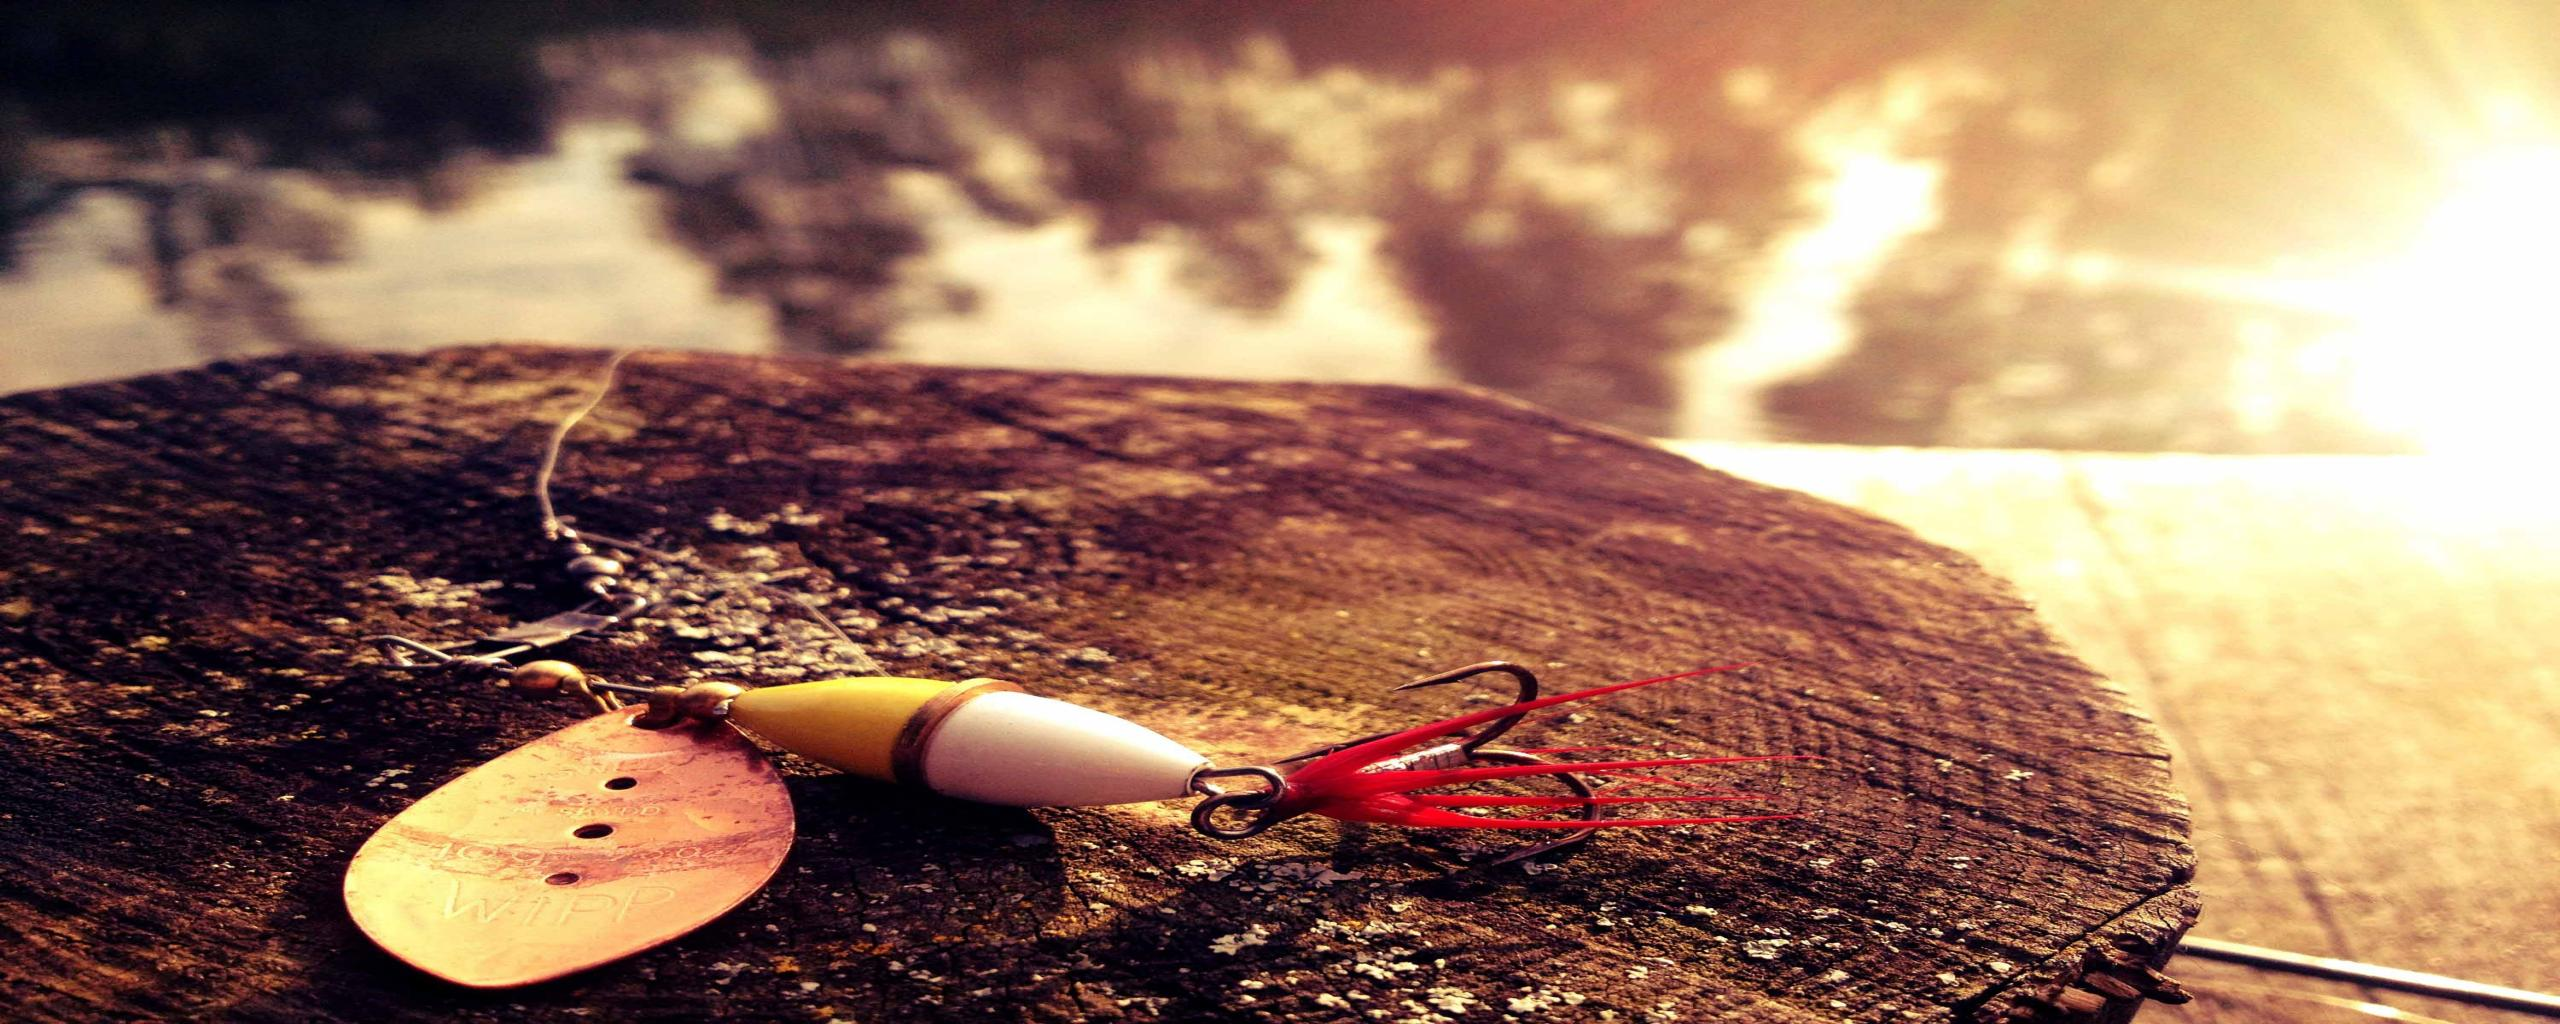 Download fishing rod wallpaper gallery for Free fishing samples 2017